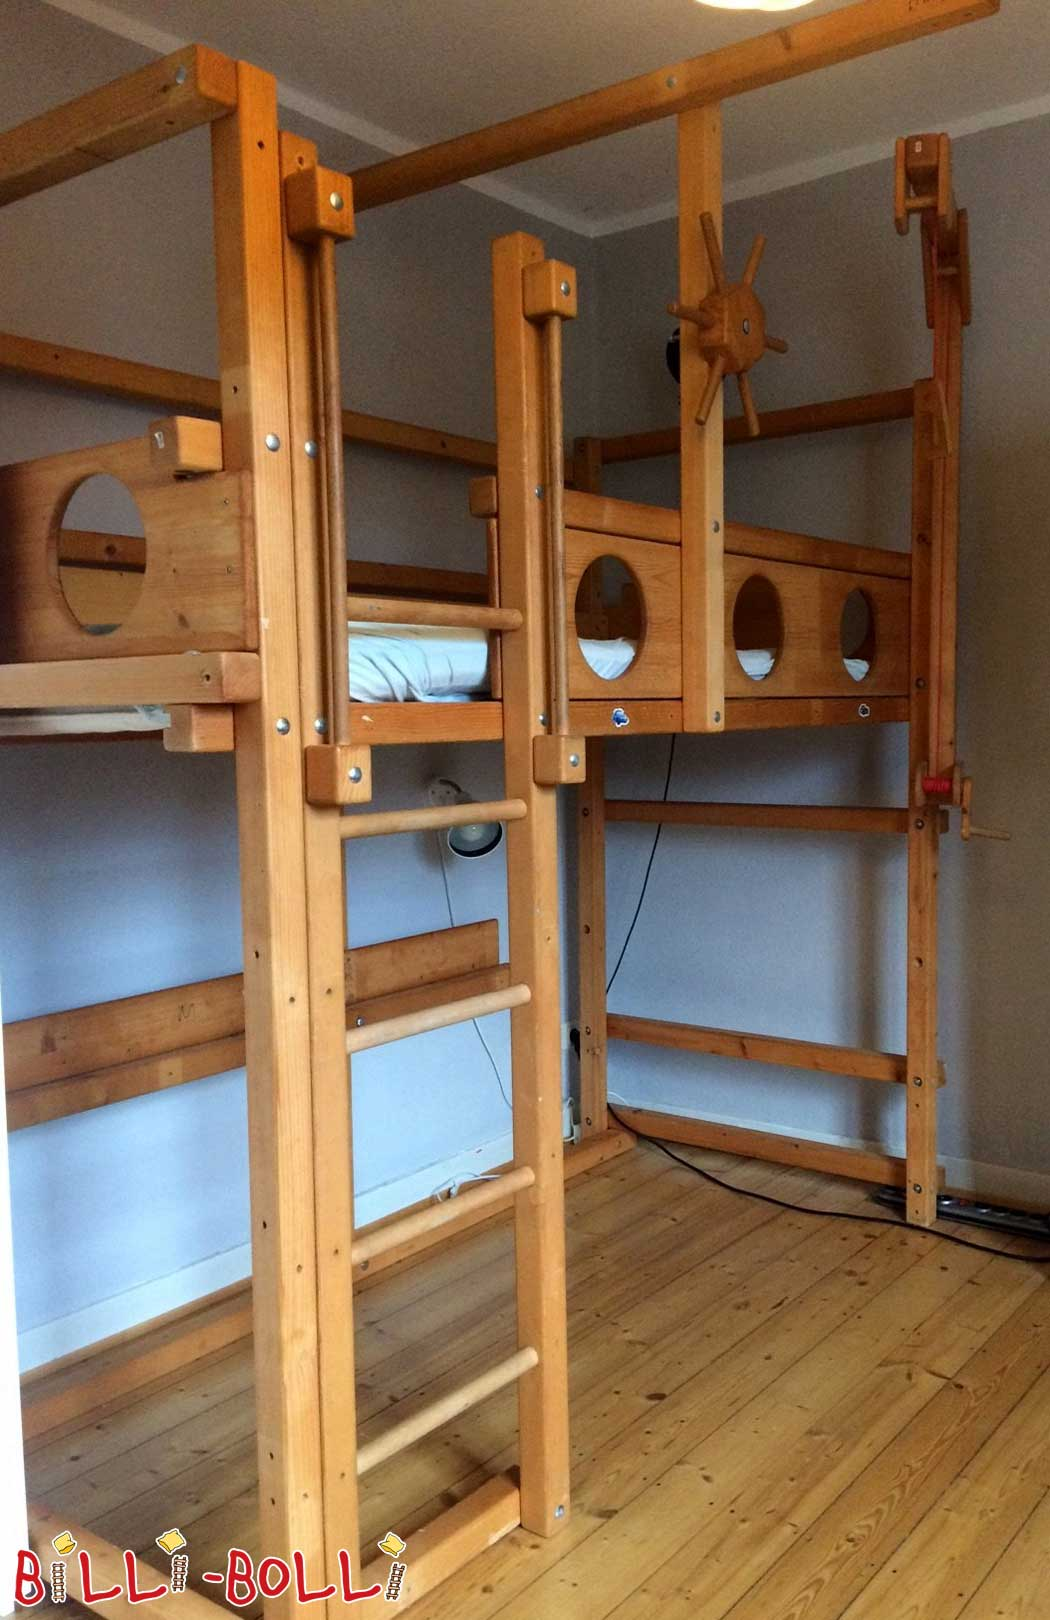 Pirate loft bed growing 90 x 200 cm, spruce honey-colored oiled (second hand loft bed)